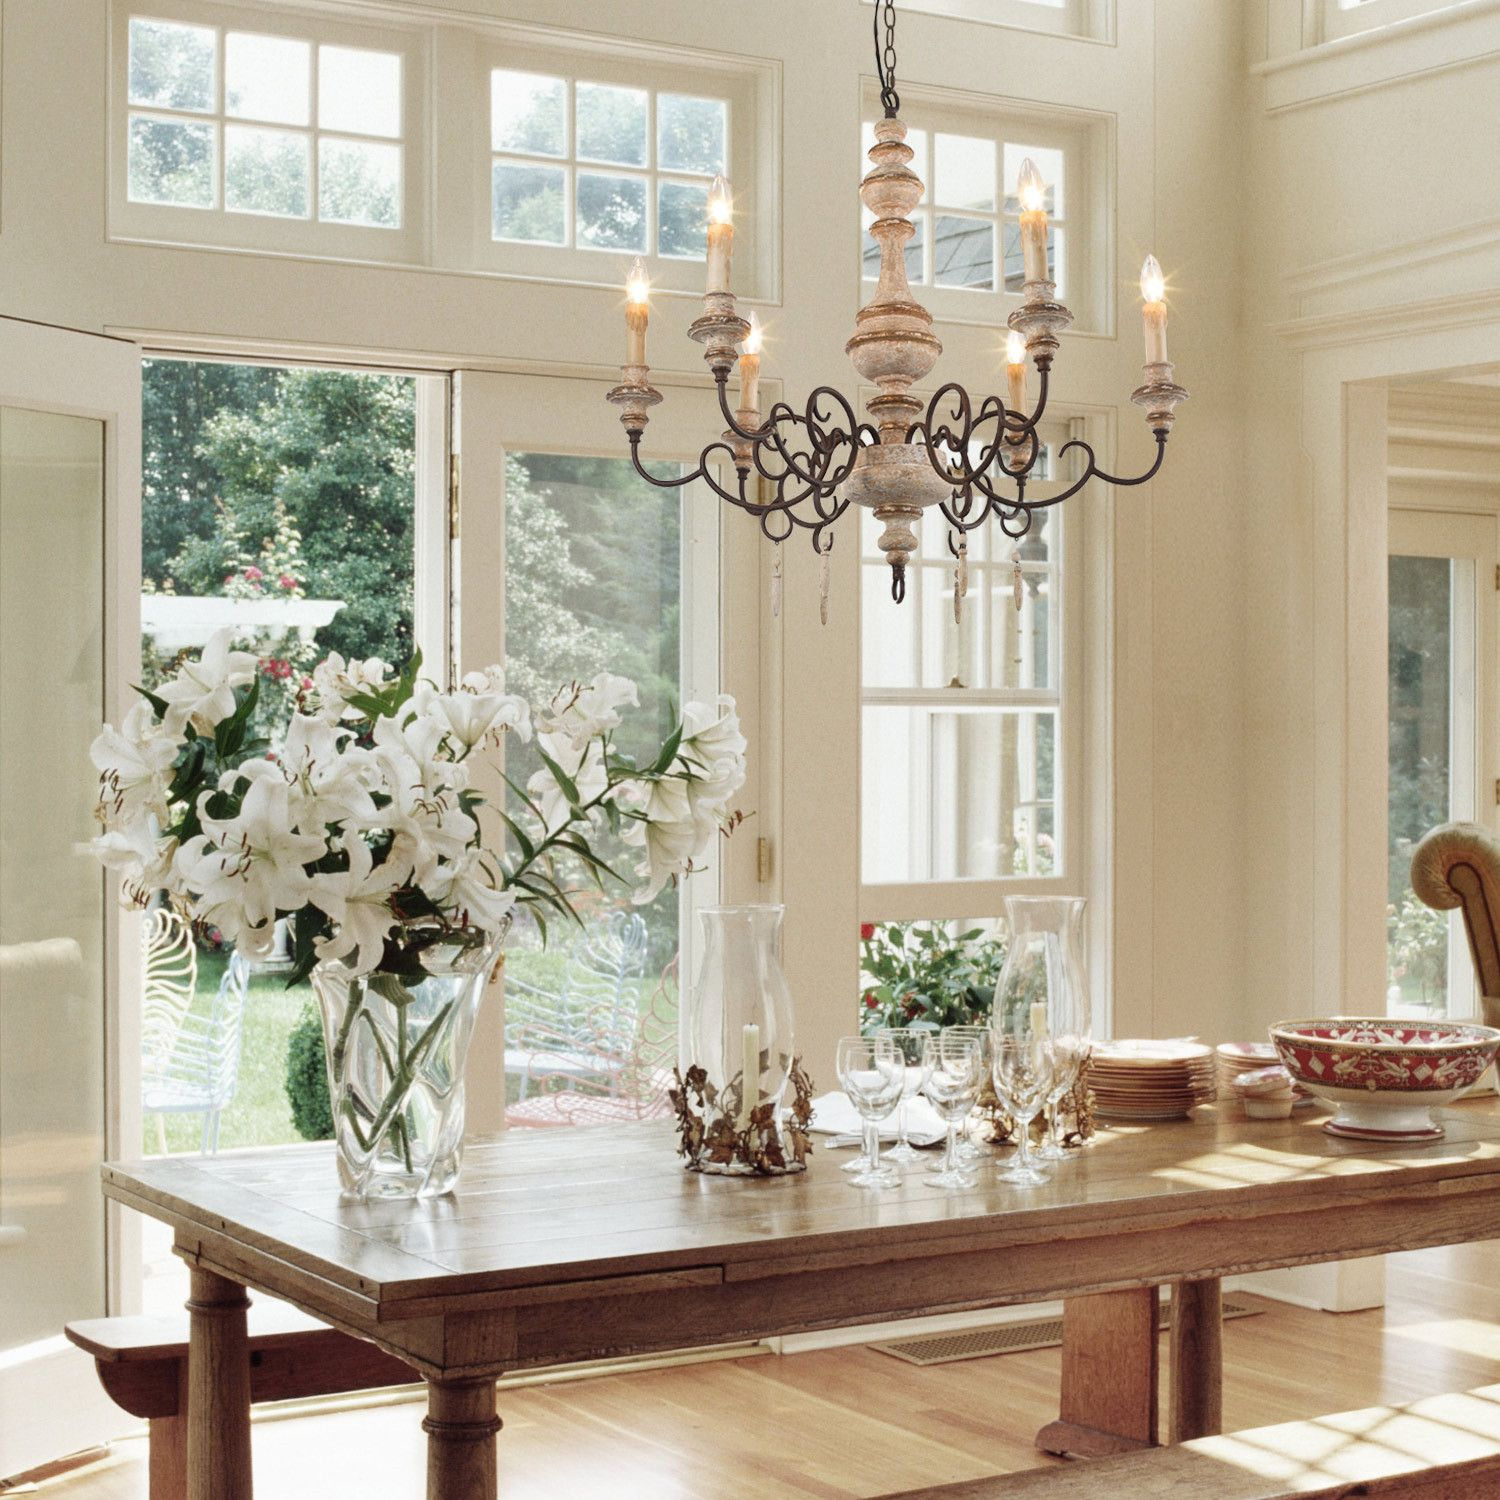 Weathered Cottage Chandelier 6 Lights in 2020 French